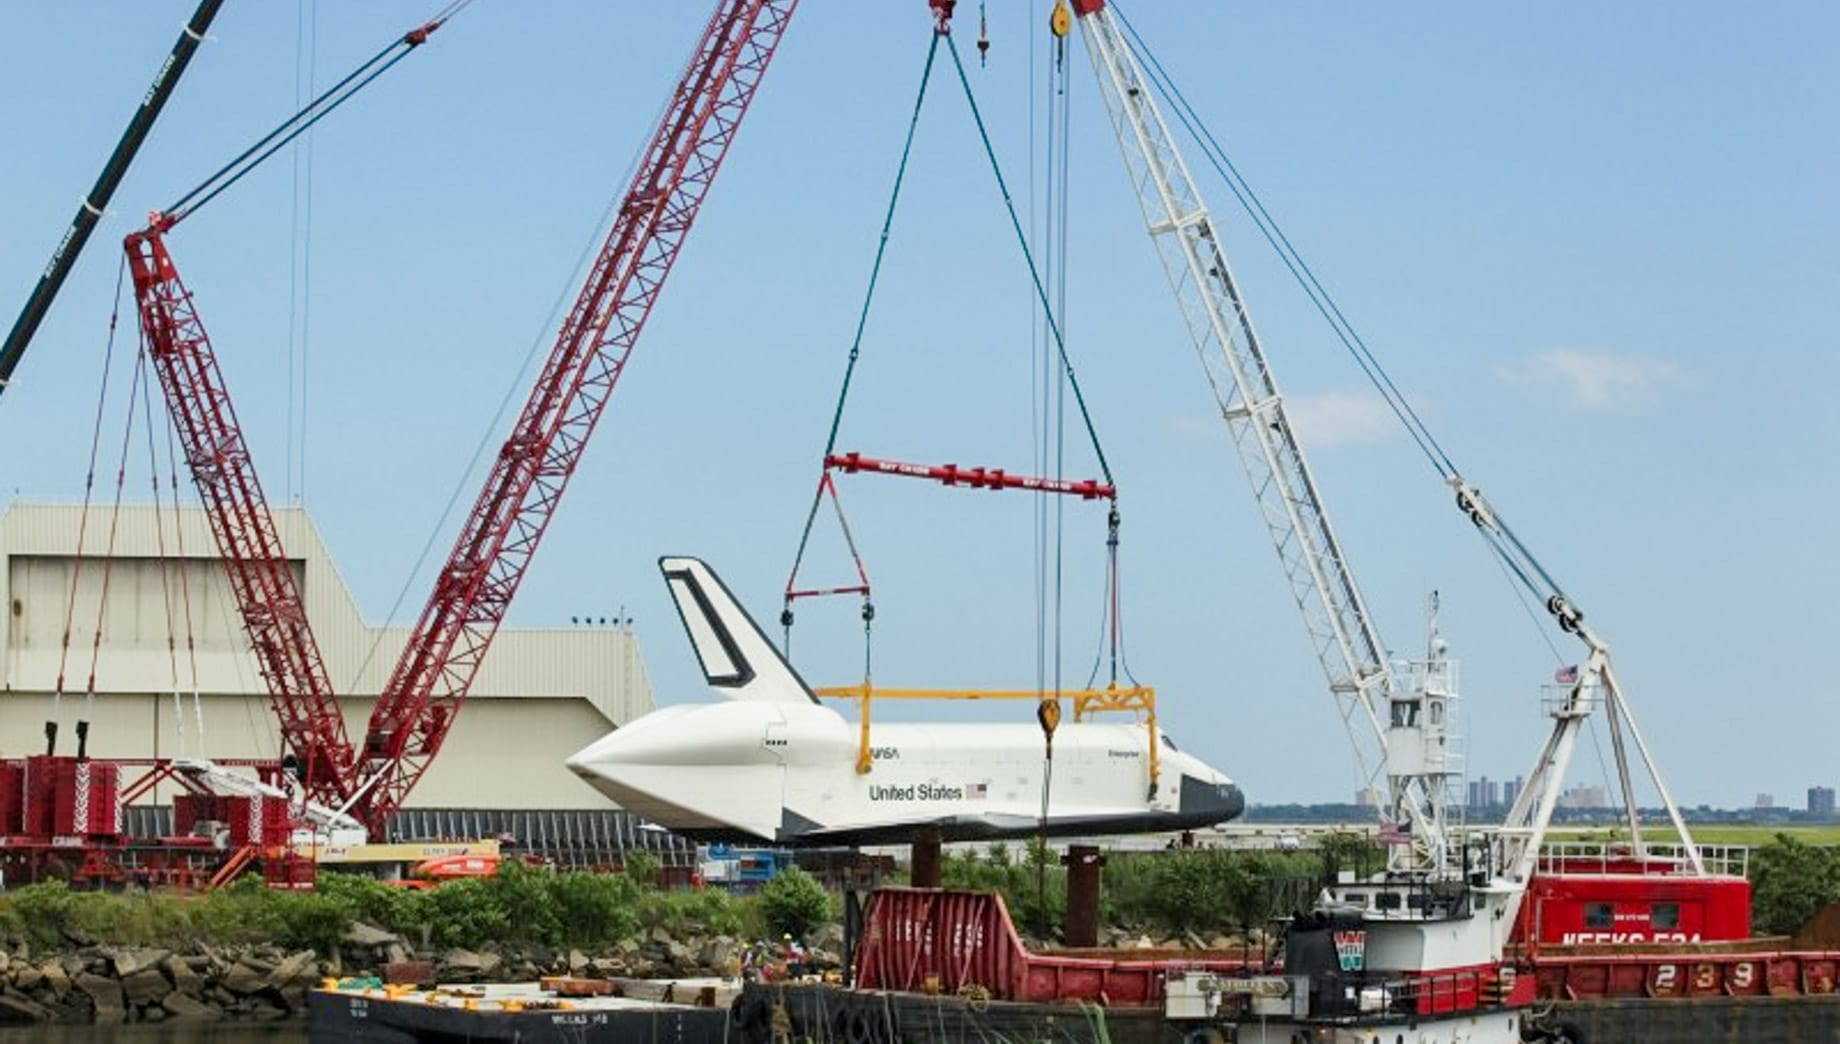 Cranes lifting space shuttle onto river platform